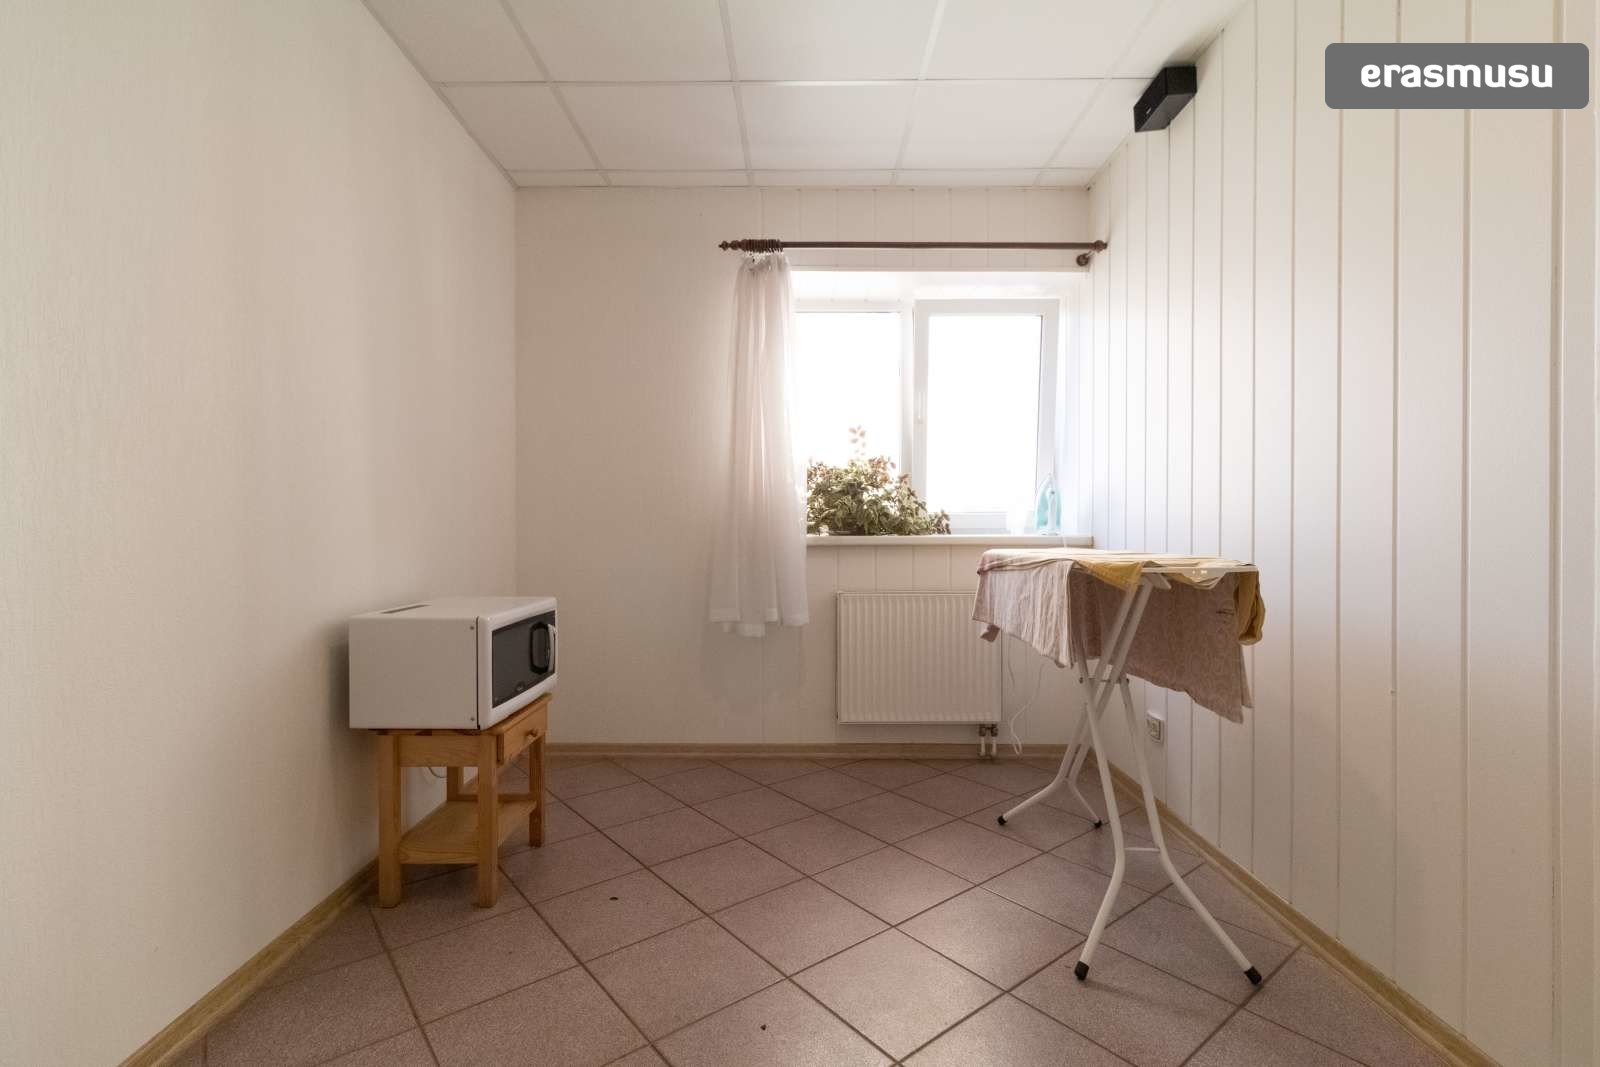 studio-apartment-rent-close-kobes-darzs-park-agenskalns-ce6e354d